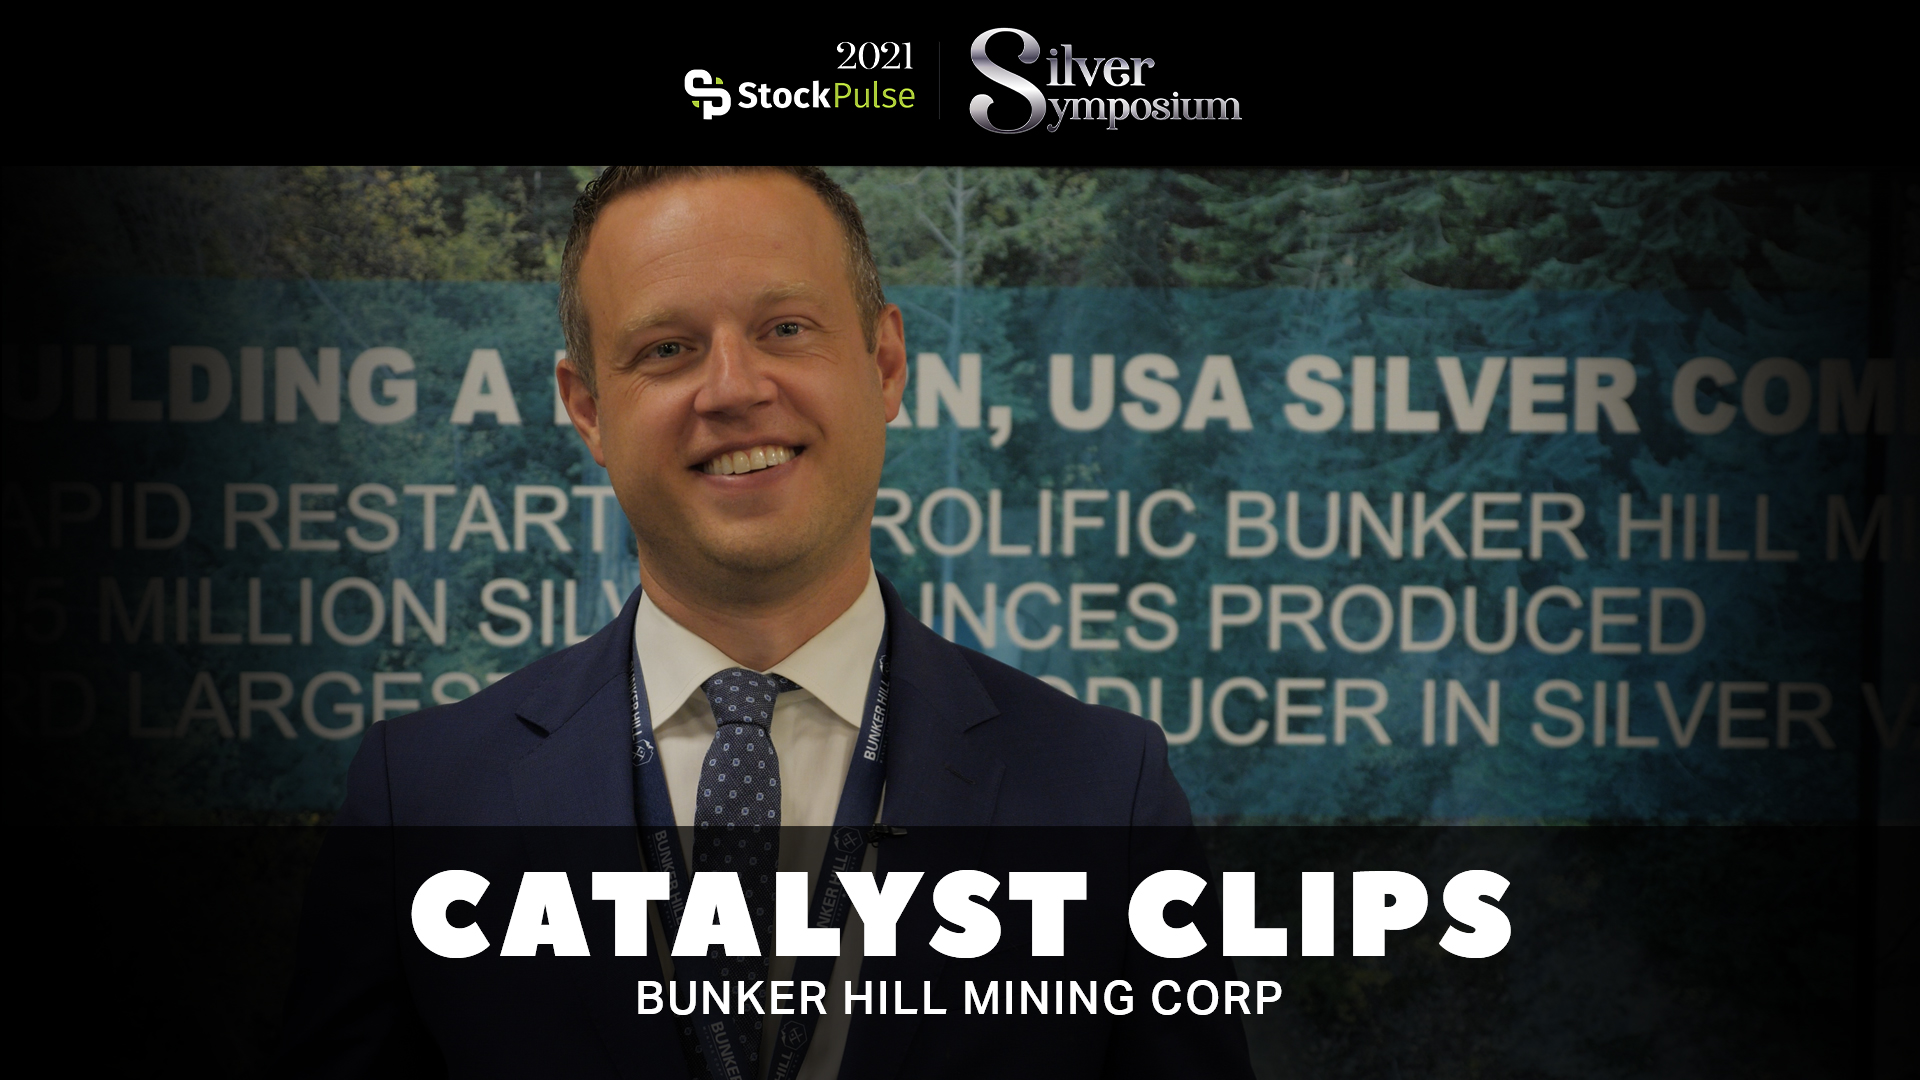 2021 StockPulse Silver Symposium Catalyst Clips | David Wiens of Bunker Hill Mining Corp